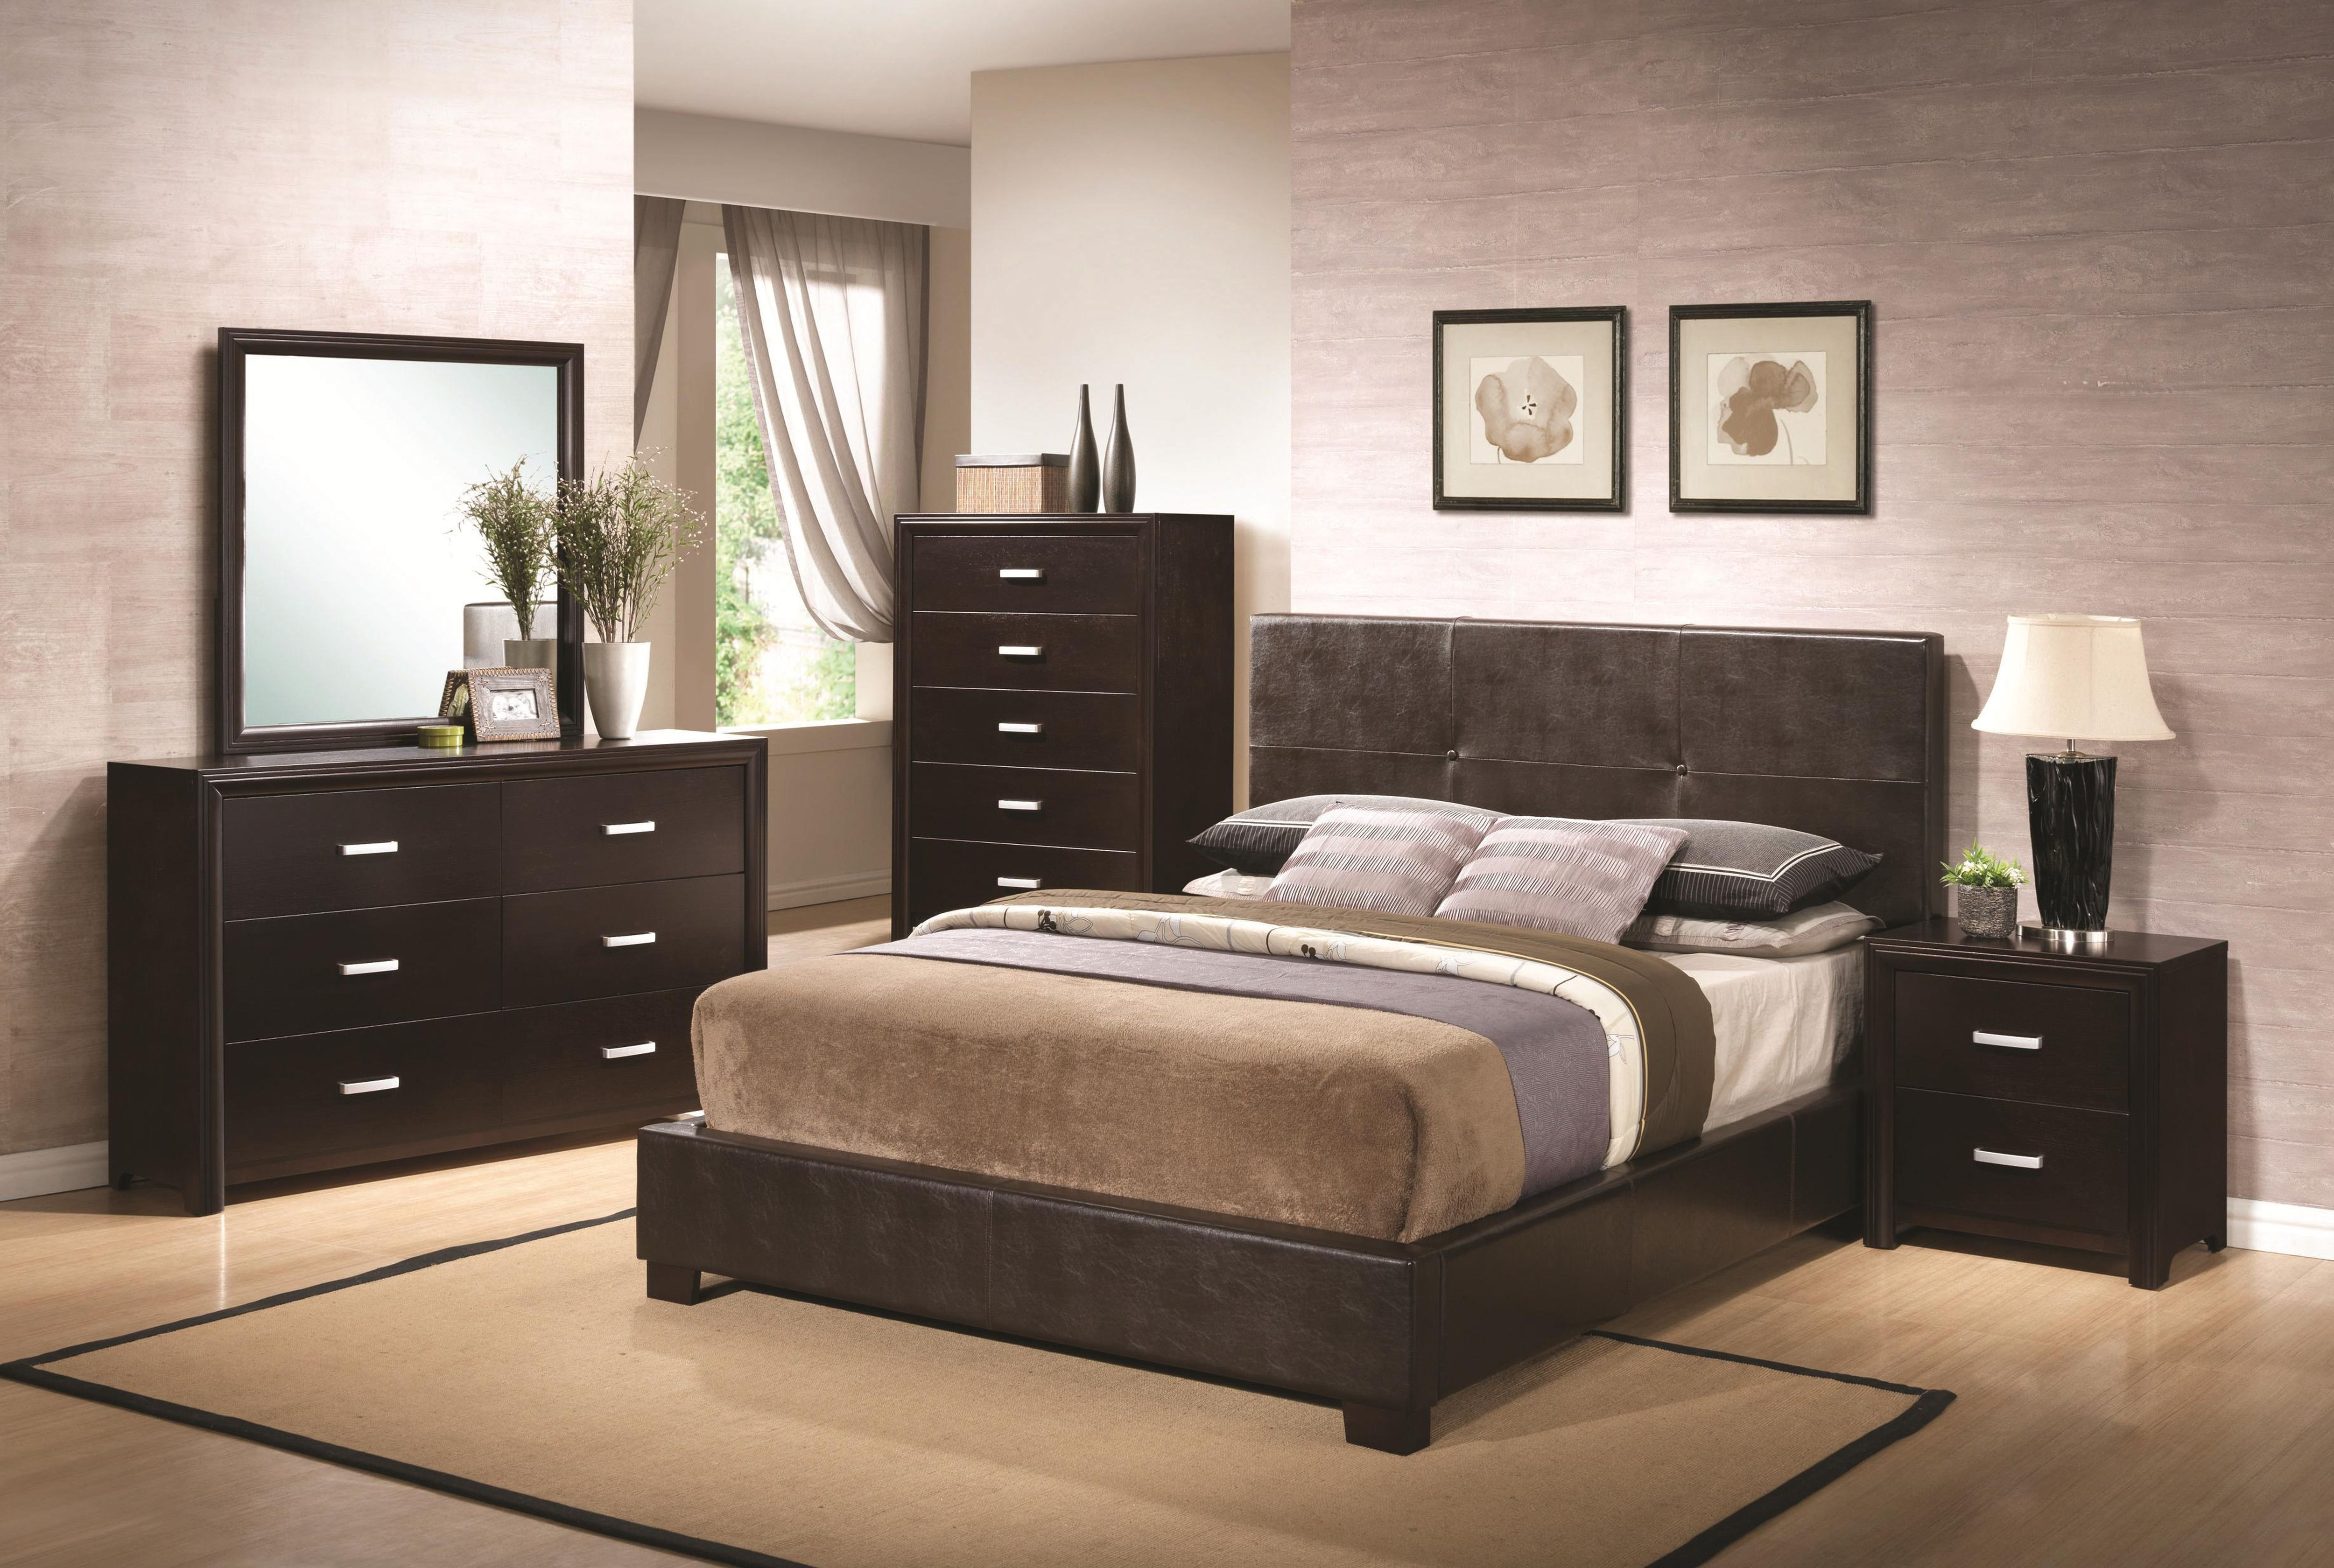 Best ideas about Bedroom Furniture Ideas . Save or Pin sets turkey ikea decorating ideas for master bedroom Now.